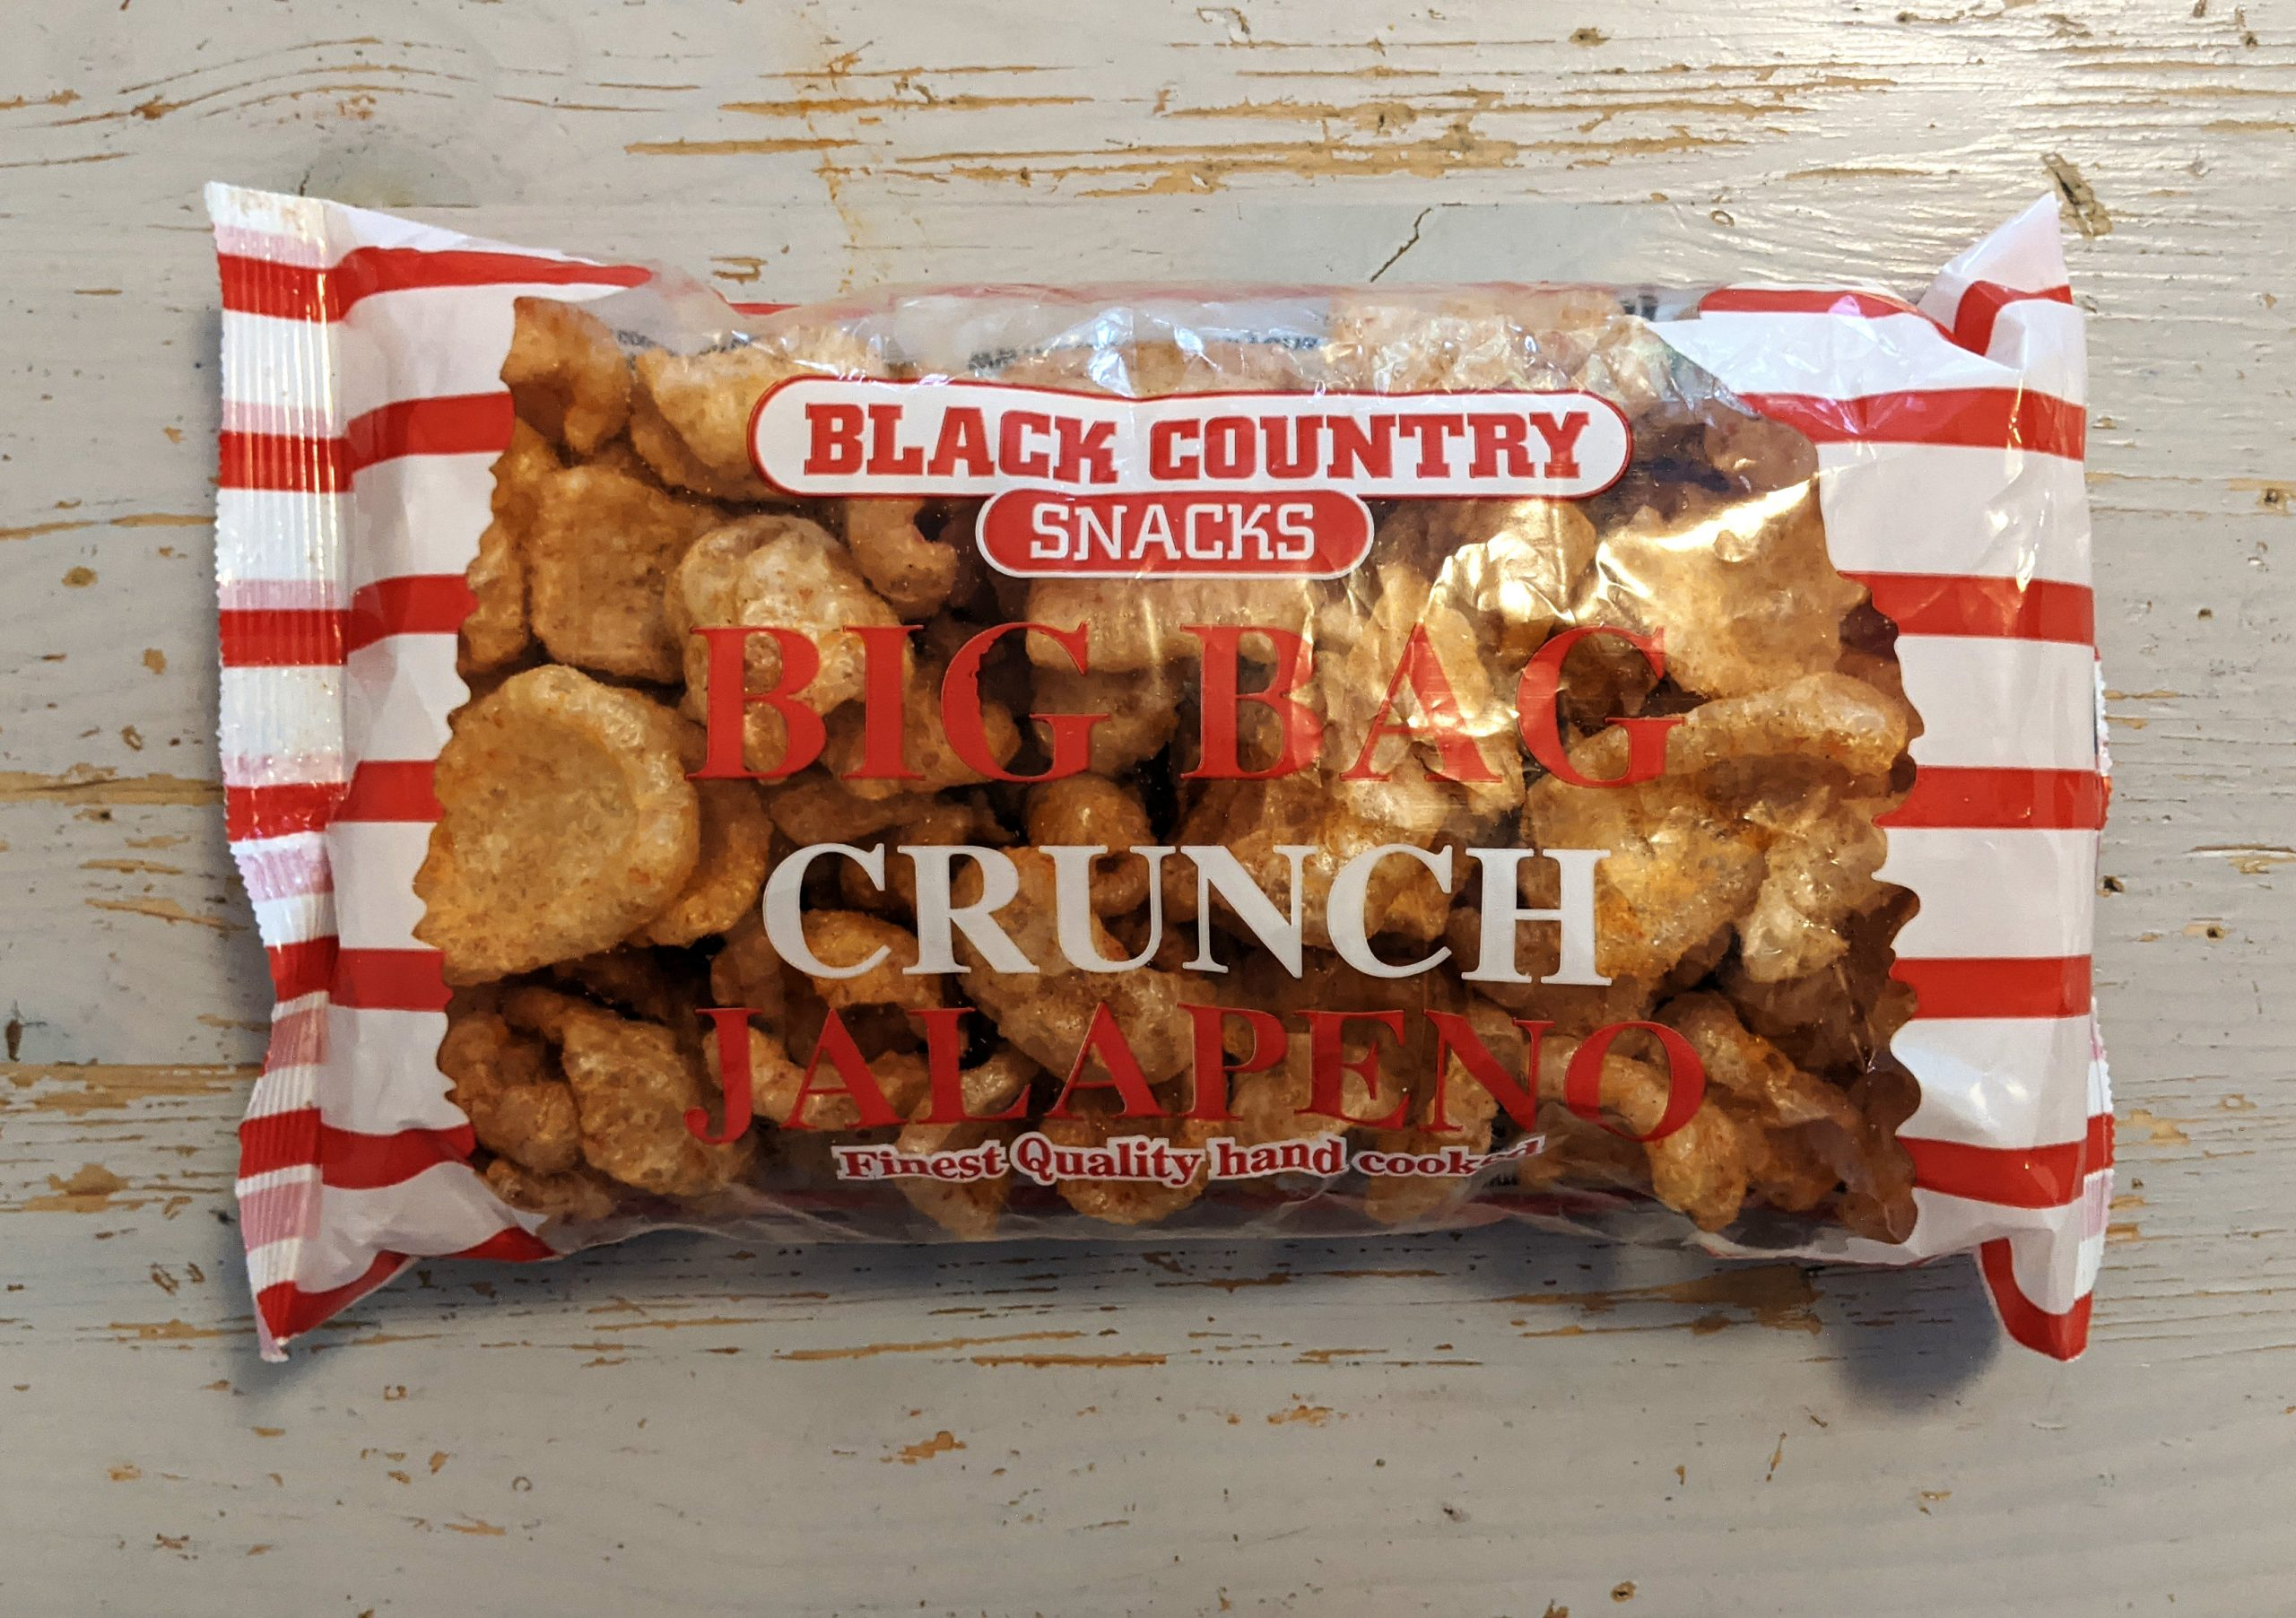 Black Country Snacks Big Bag Crunch Jalapeno Review scaled - How to Review Pork Scratchings